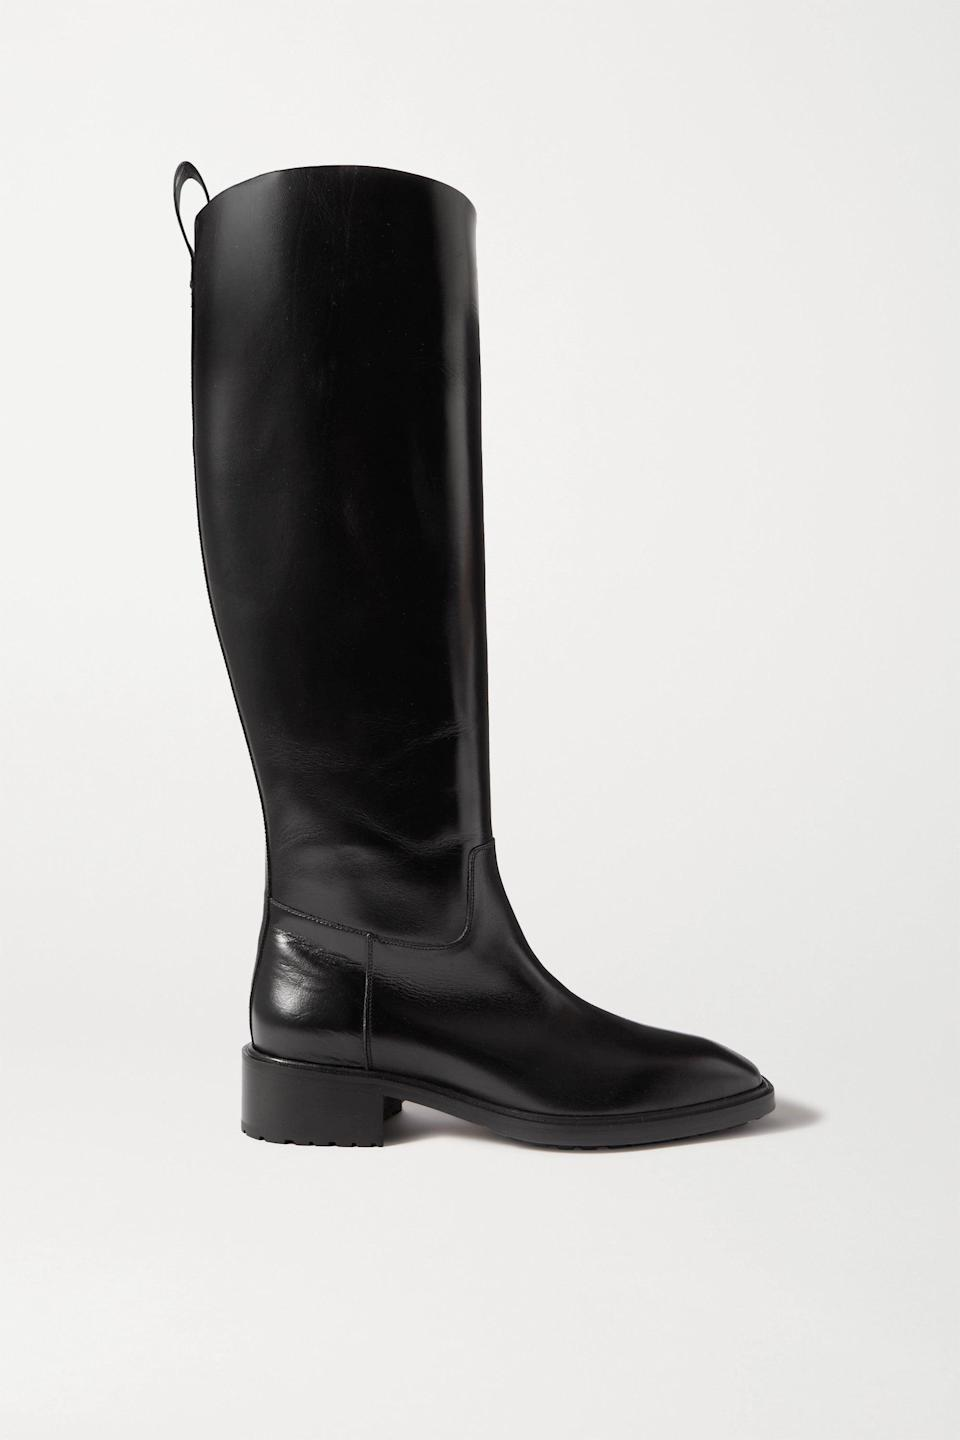 "<br><br><strong>aeydē</strong> Tammy Leather Knee Boots, $, available at <a href=""https://go.skimresources.com/?id=30283X879131&url=https%3A%2F%2Fwww.net-a-porter.com%2Fen-us%2Fshop%2Fproduct%2Faeyde%2Ftammy-leather-knee-boots%2F1301245"" rel=""nofollow noopener"" target=""_blank"" data-ylk=""slk:Net-A-Porter"" class=""link rapid-noclick-resp"">Net-A-Porter</a>"